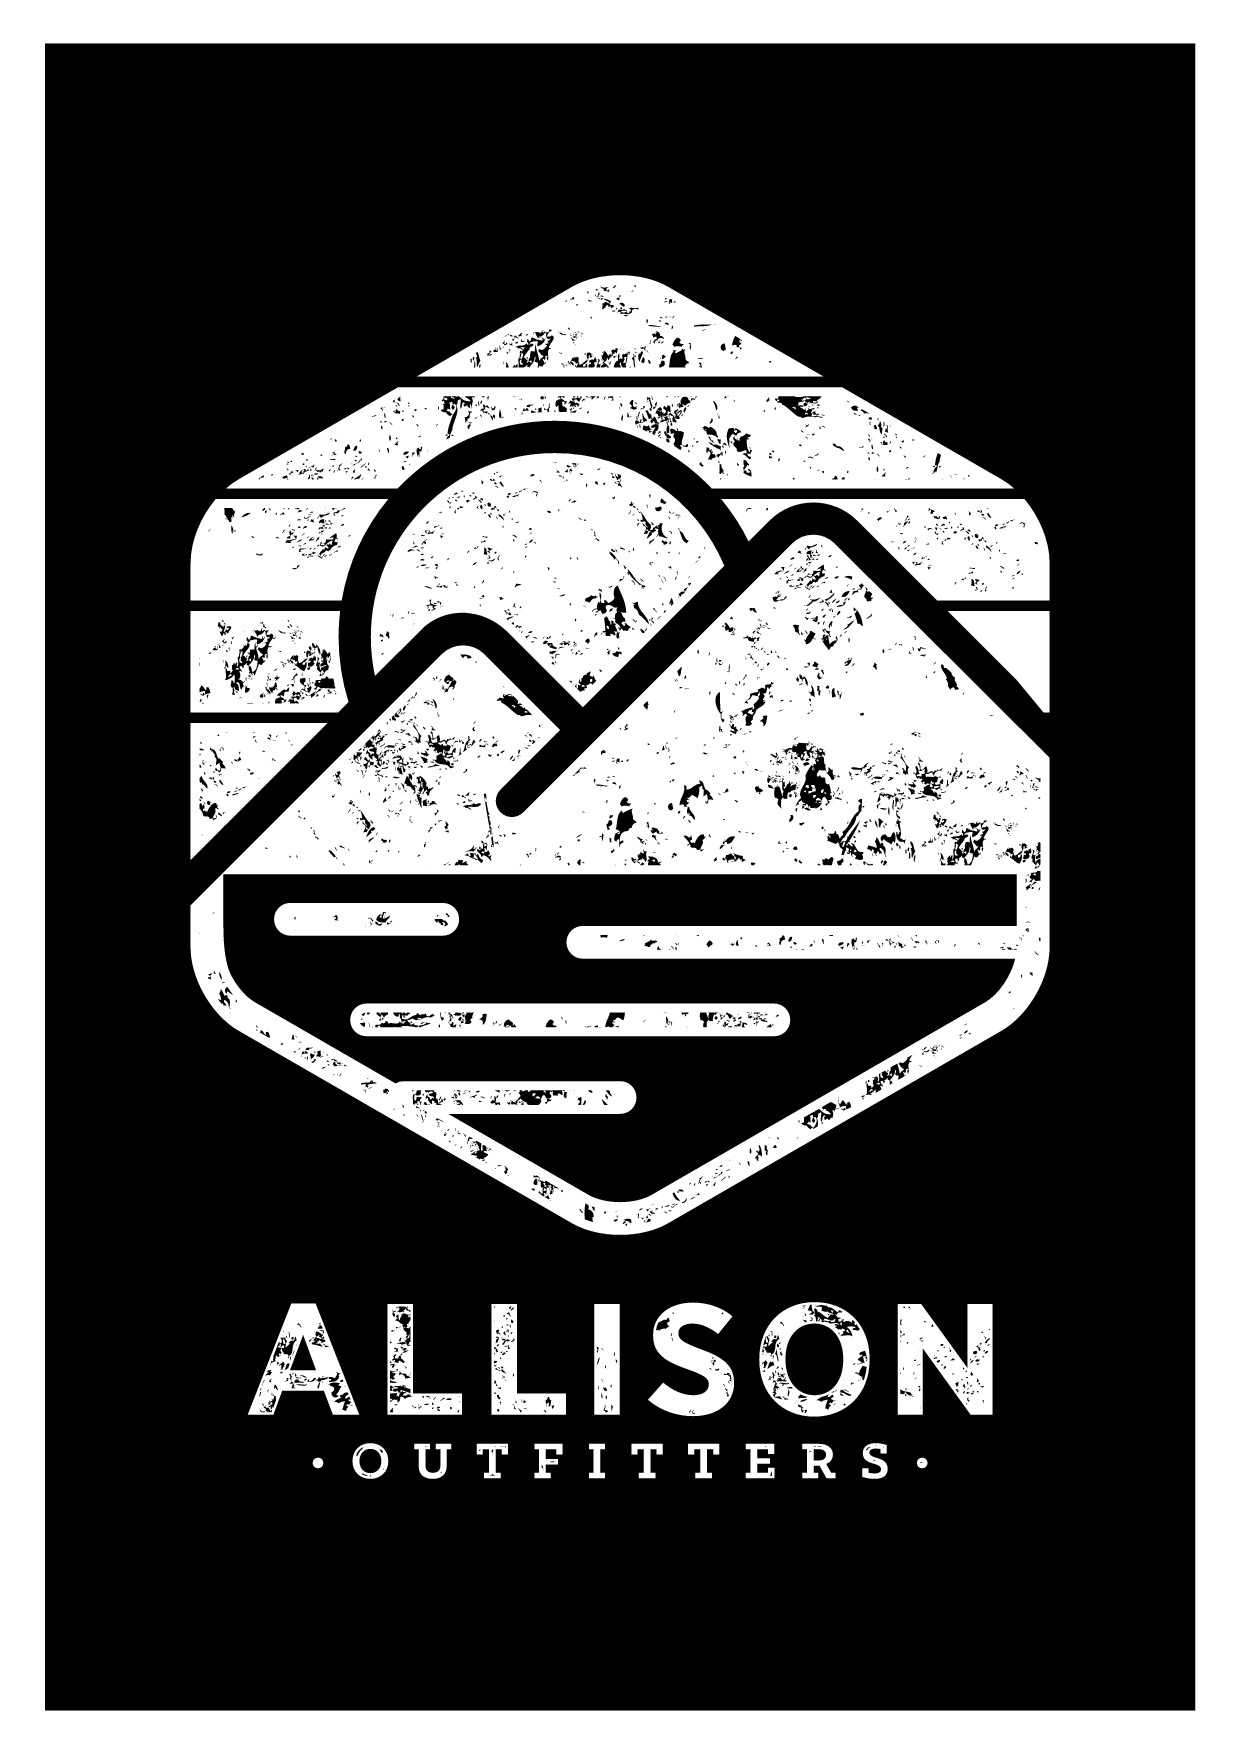 Allison Outfitters - Tshirt, 1